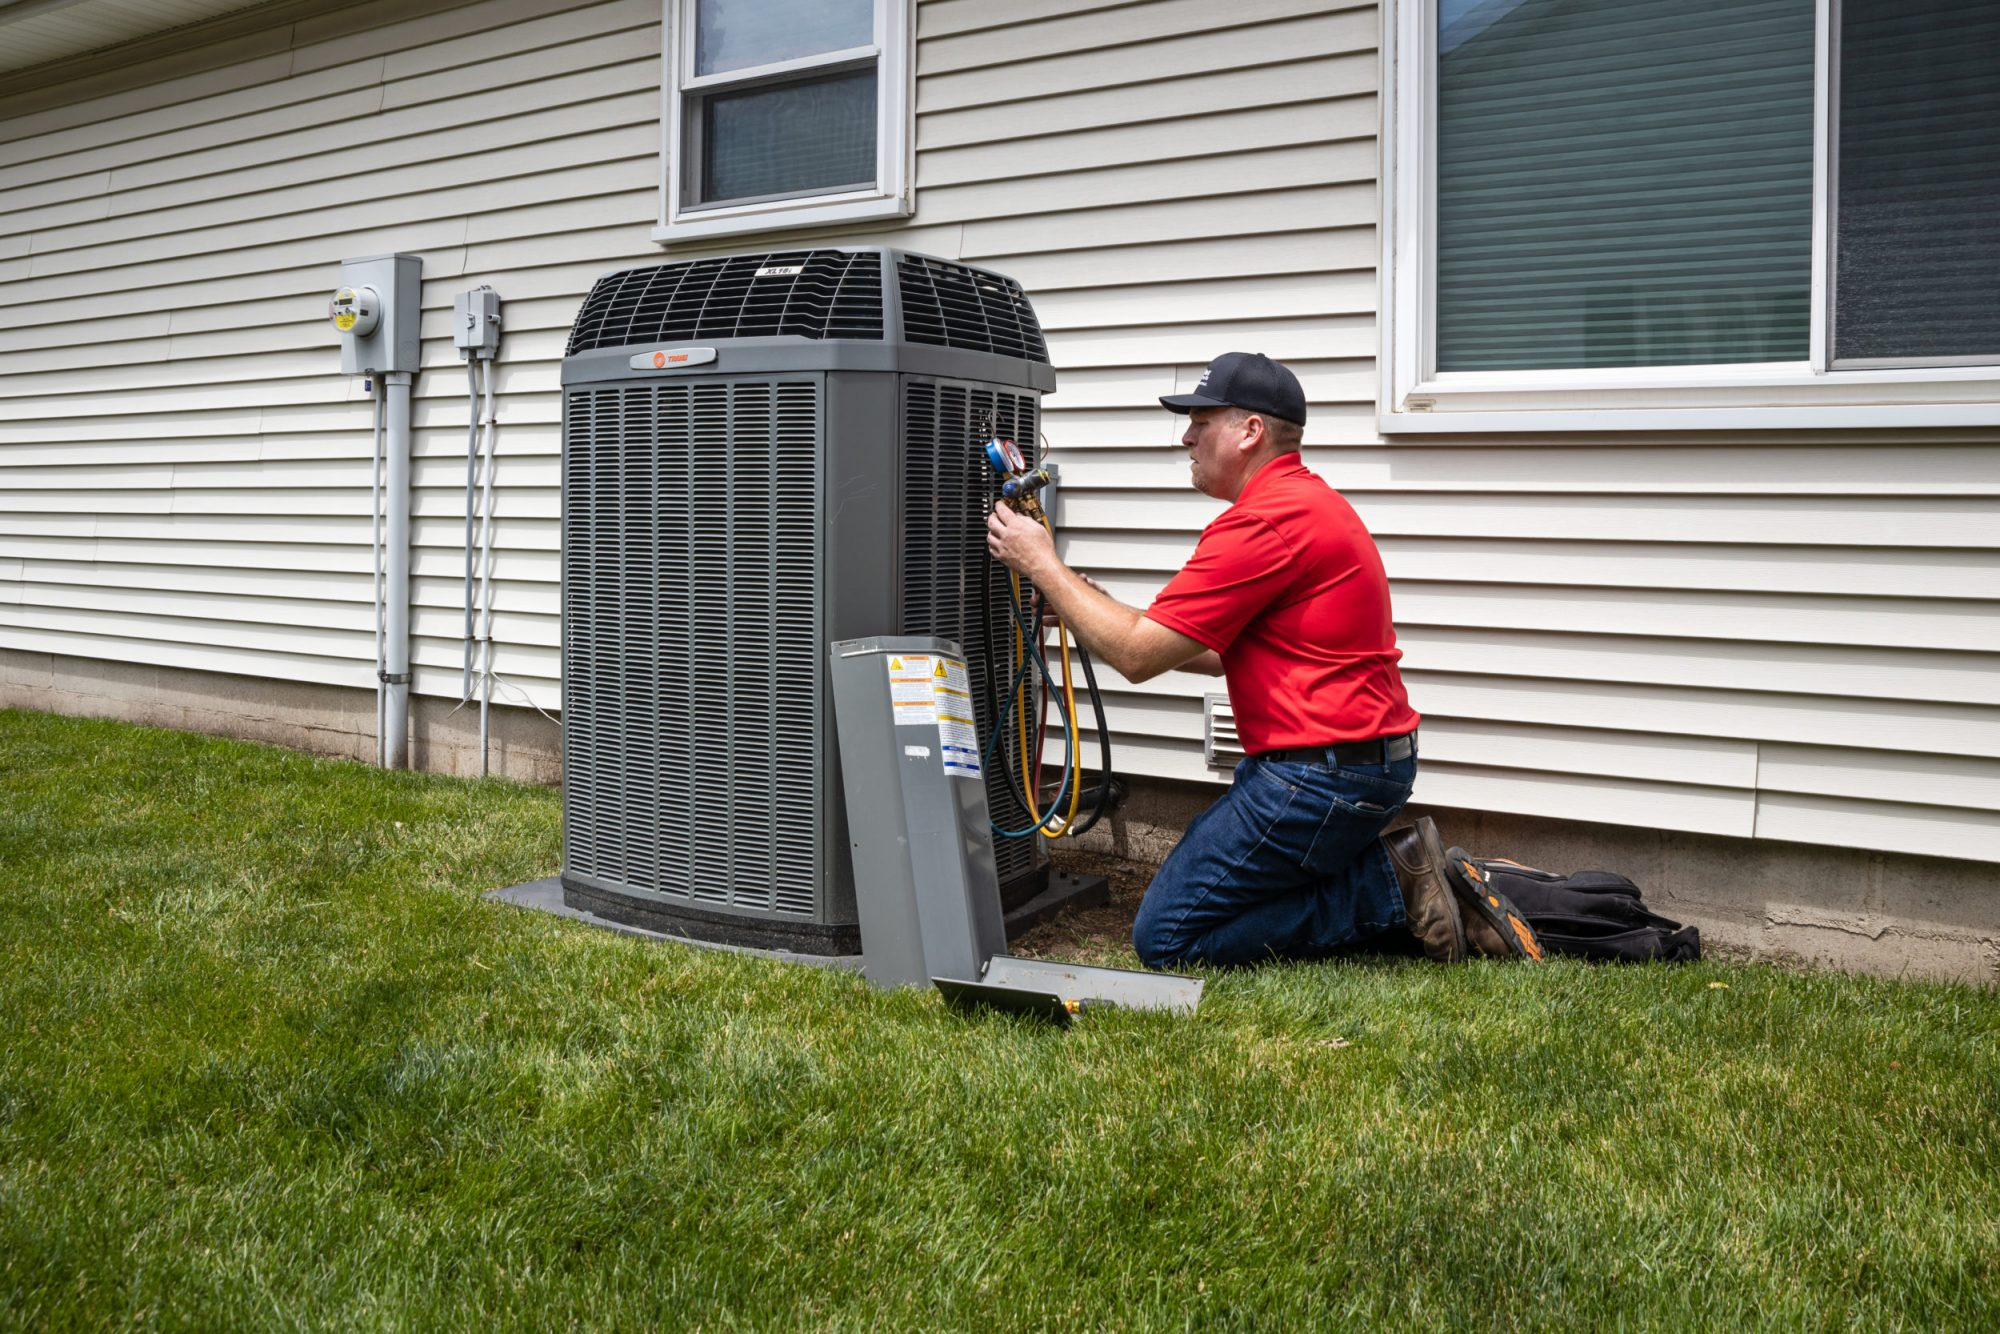 Mattex - Air Conditioning Repair in Champaign & Mattoon